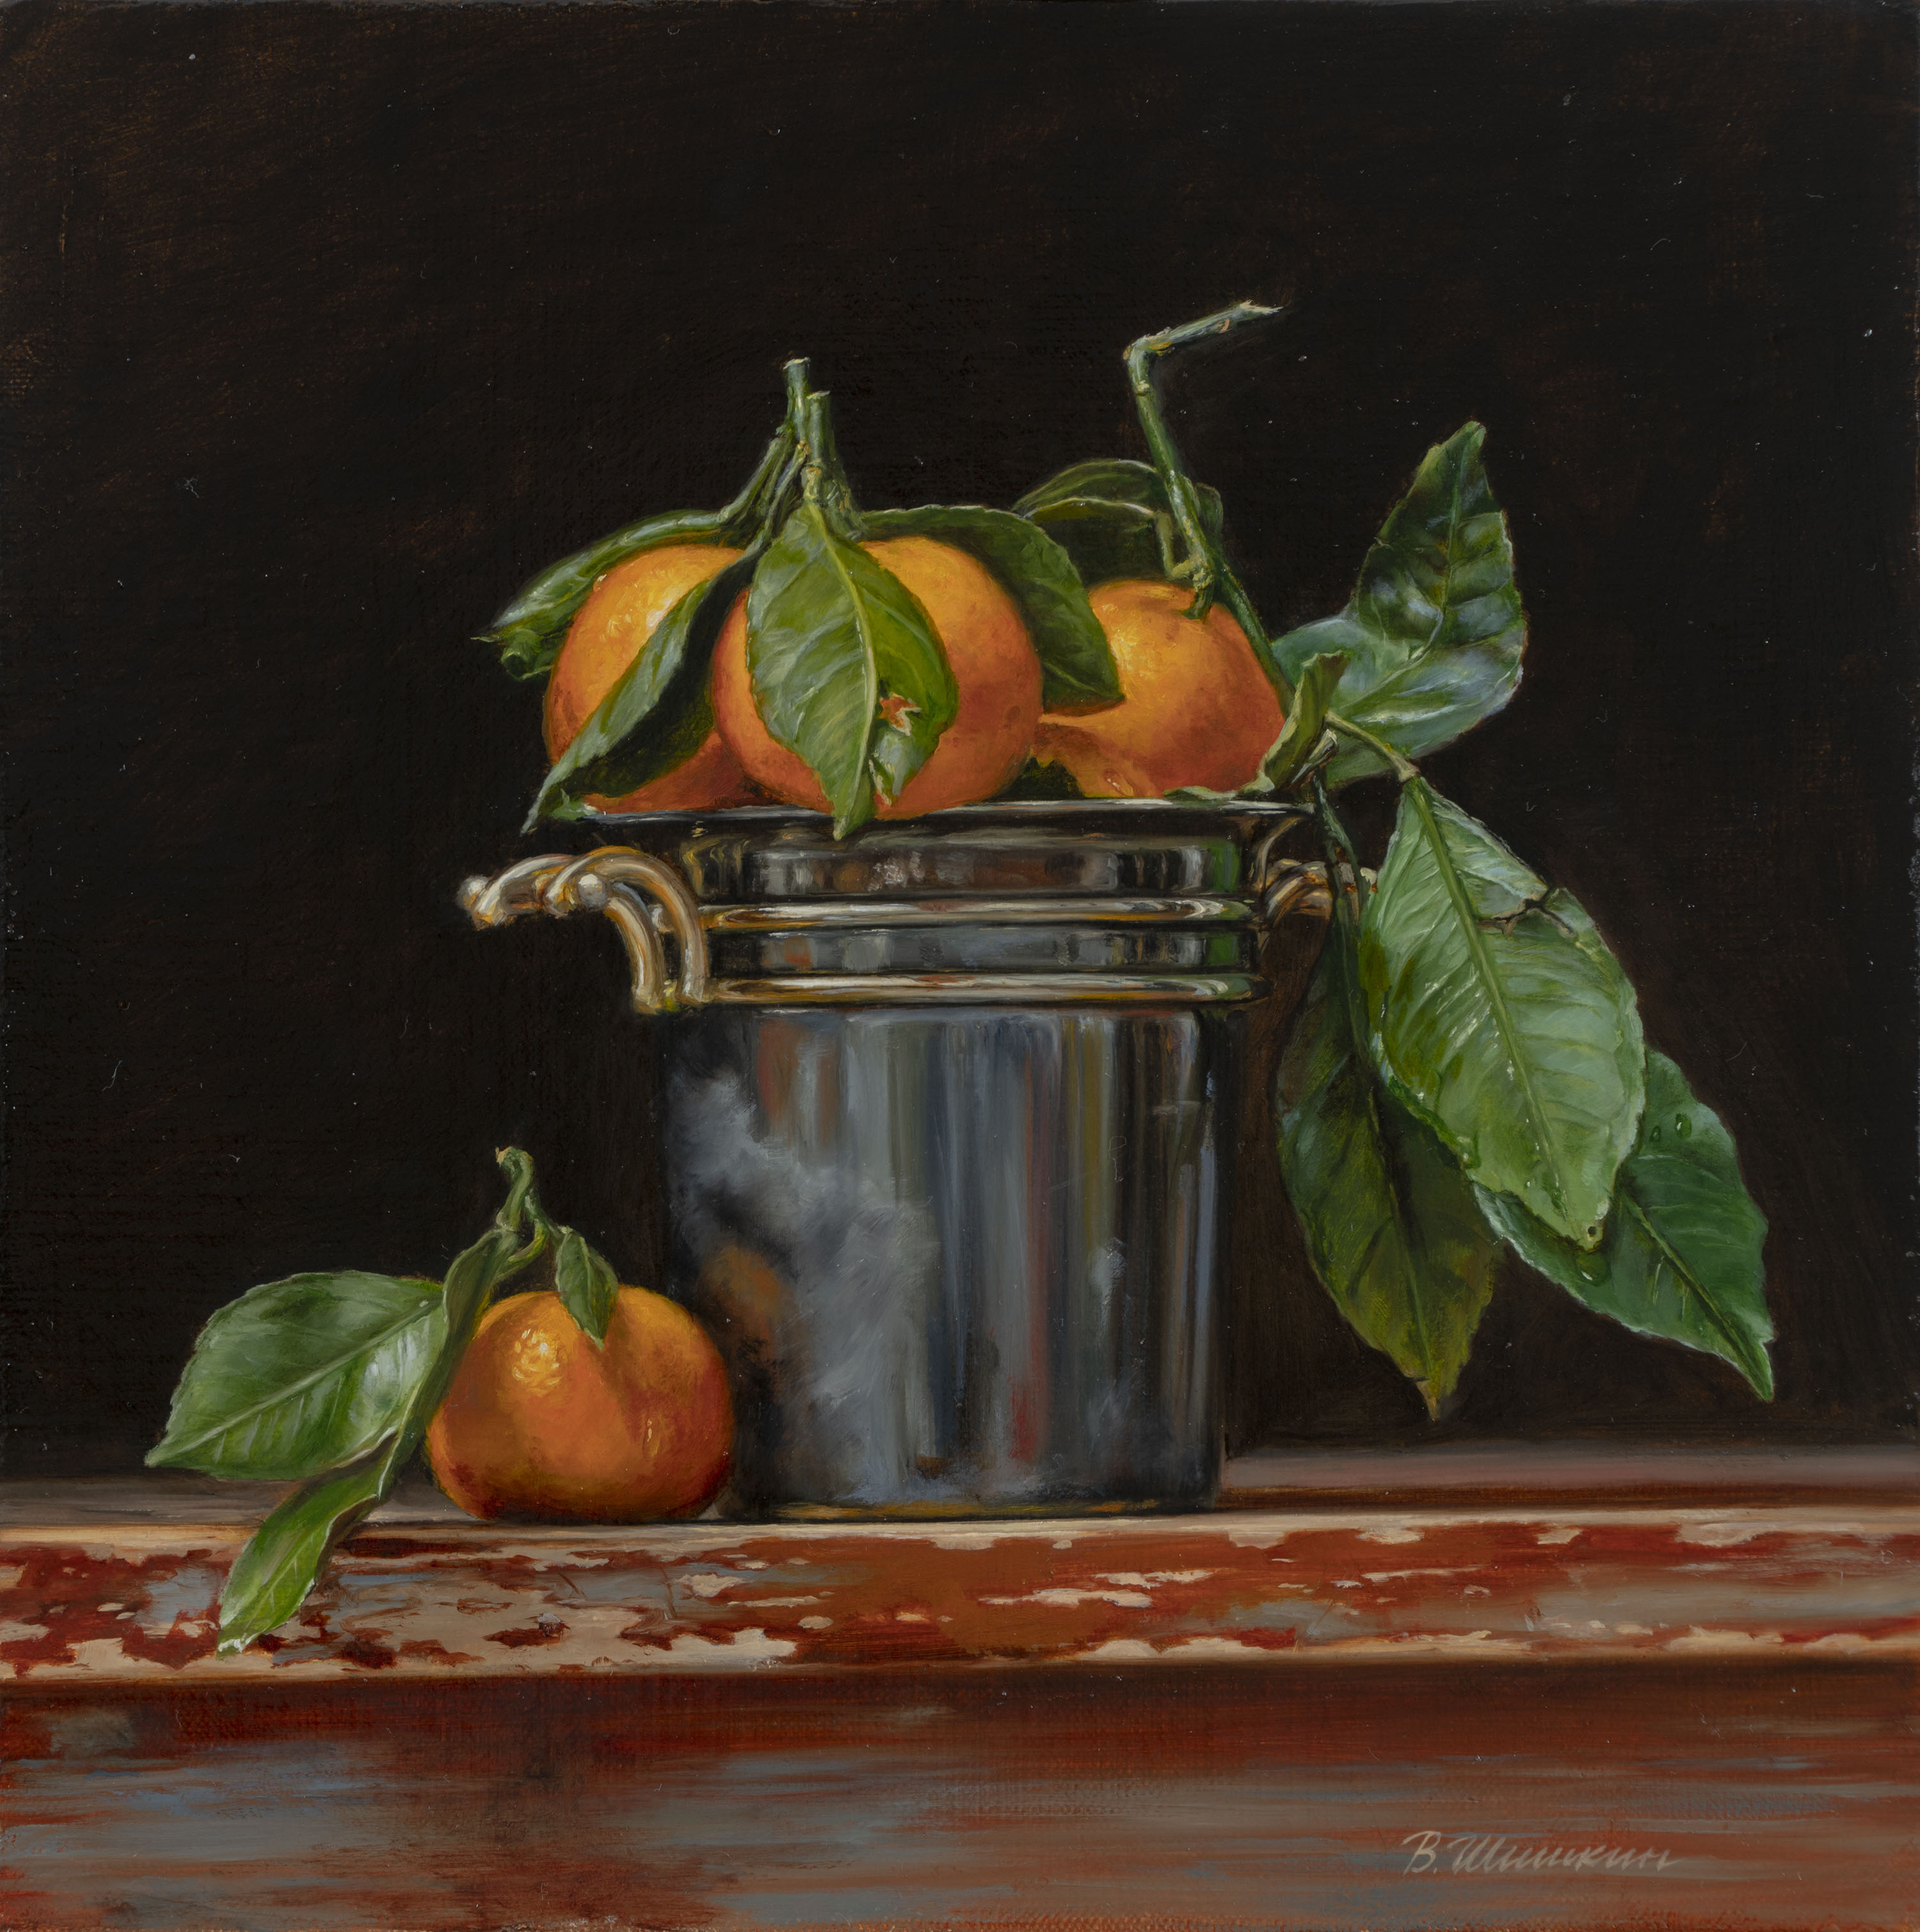 Tangerines in a bucket